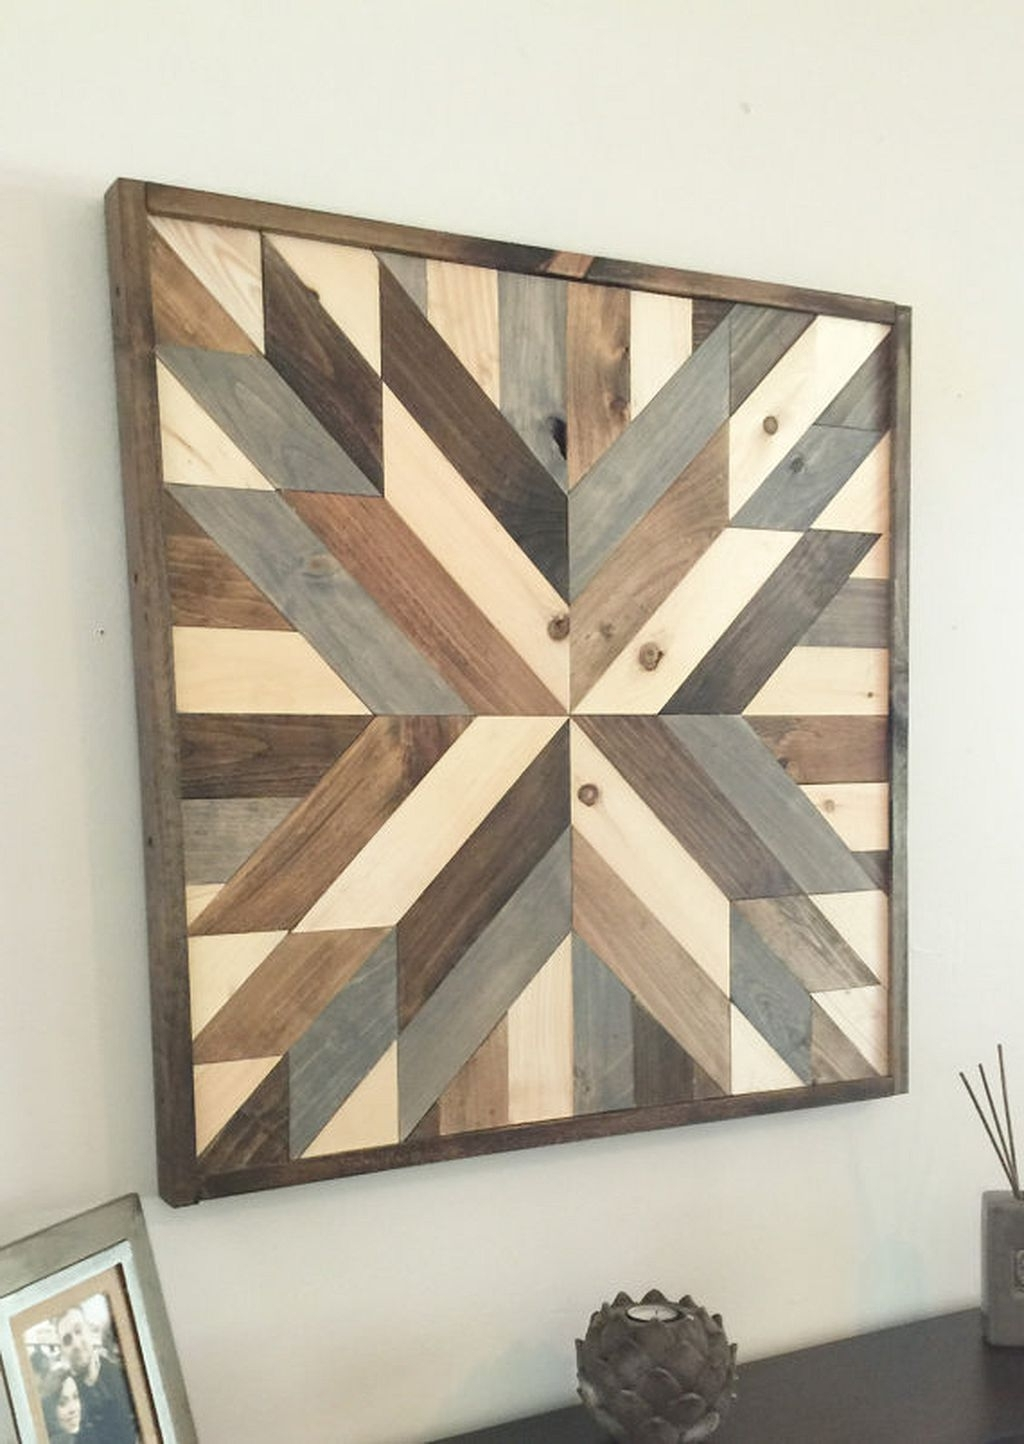 2017 Nice 50+ Rustic Wall Decor Ideas Https://architecturemagz/50 With Regard To Rustic Wall Art (View 4 of 15)